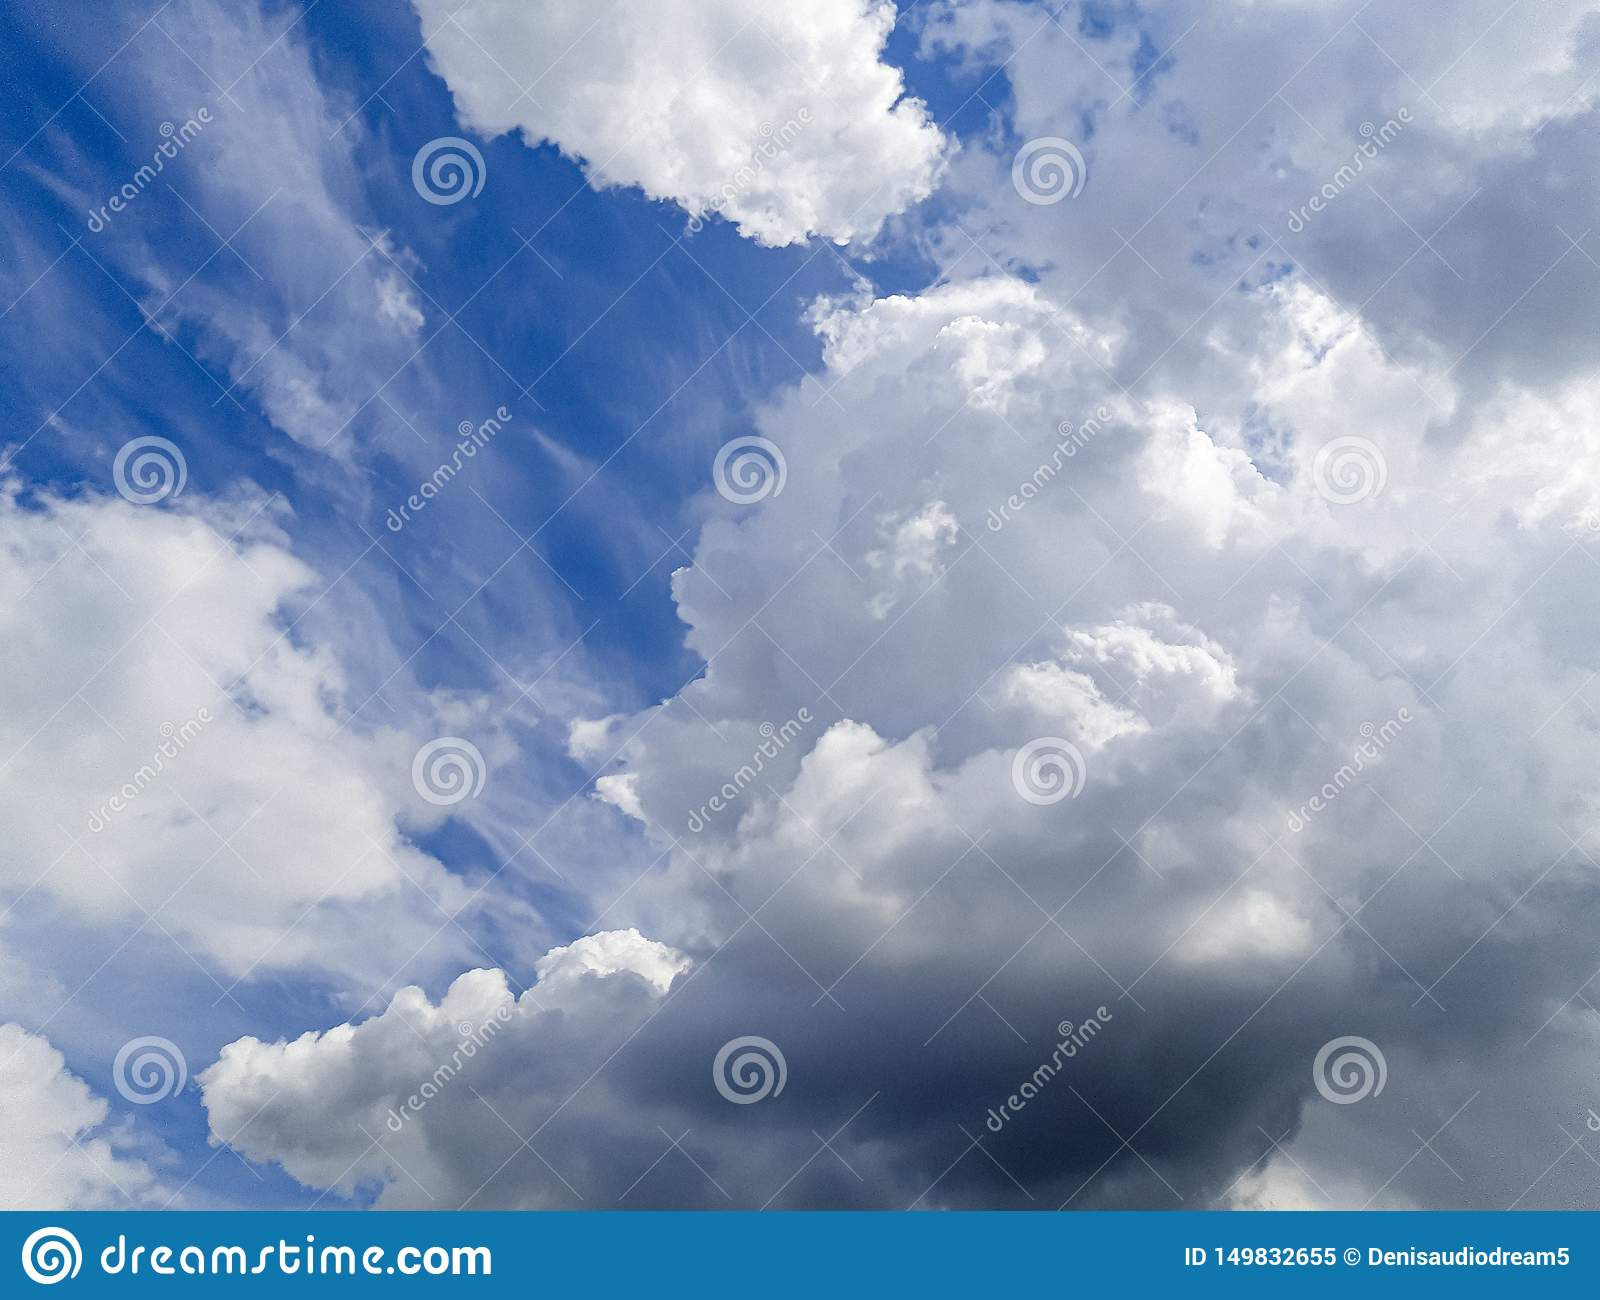 Very beautiful blue clouds, photo taken by a professional with love